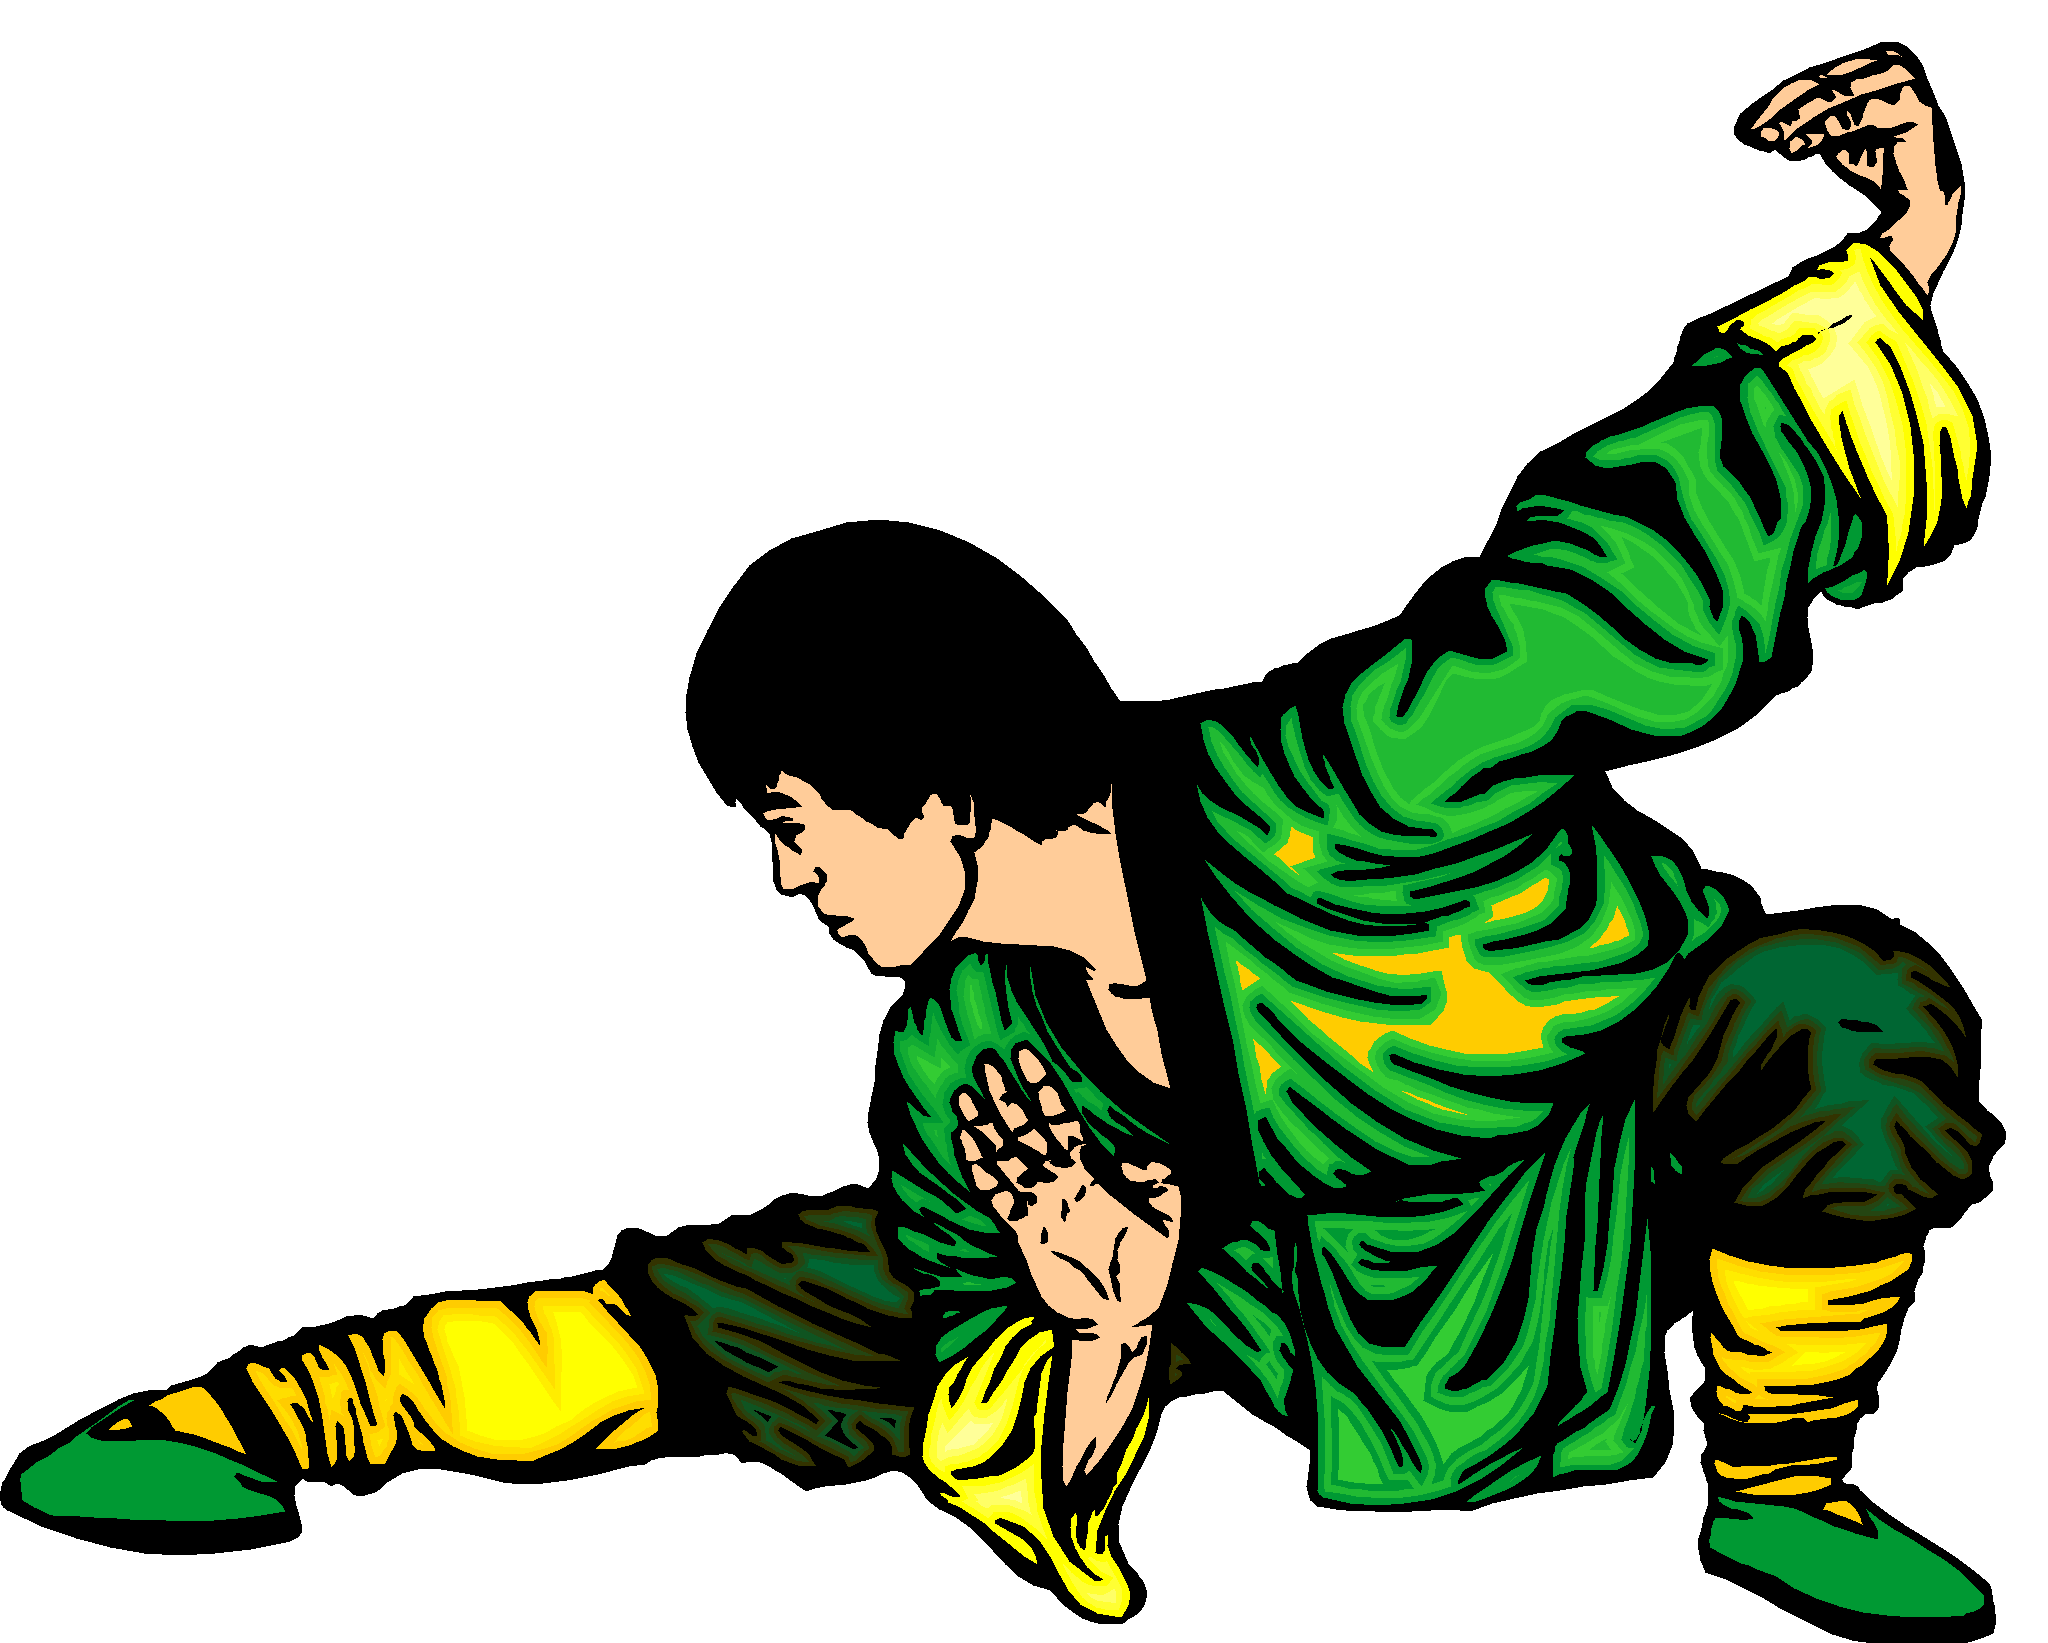 Monkas clipart monk shaolin. Learn authentic chinese fighting